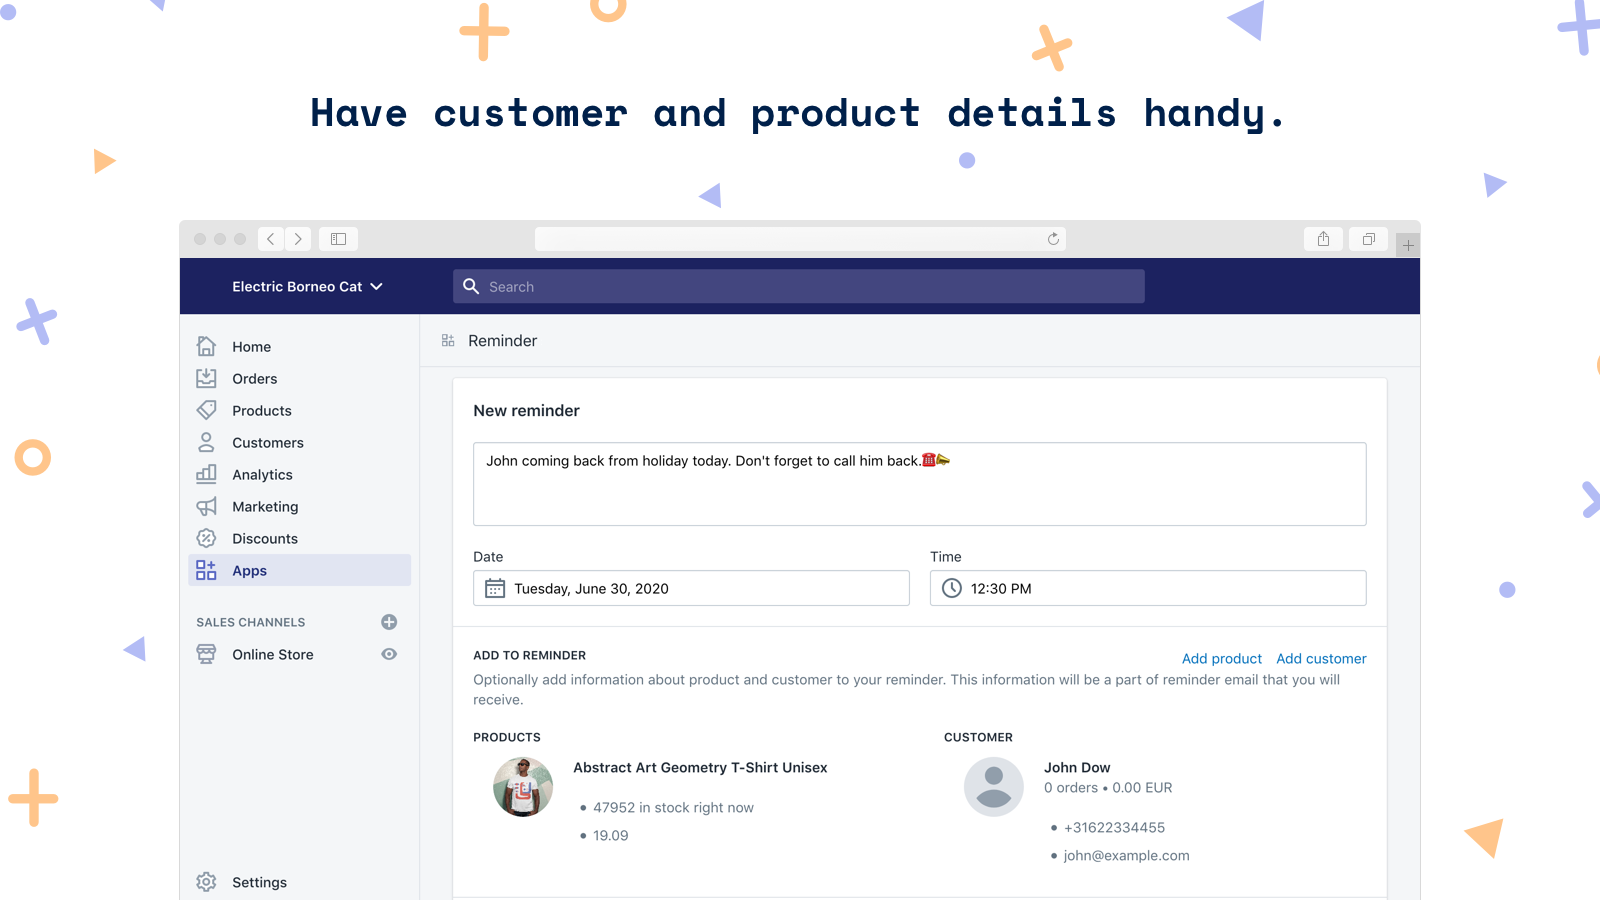 Have customer and product details handy.